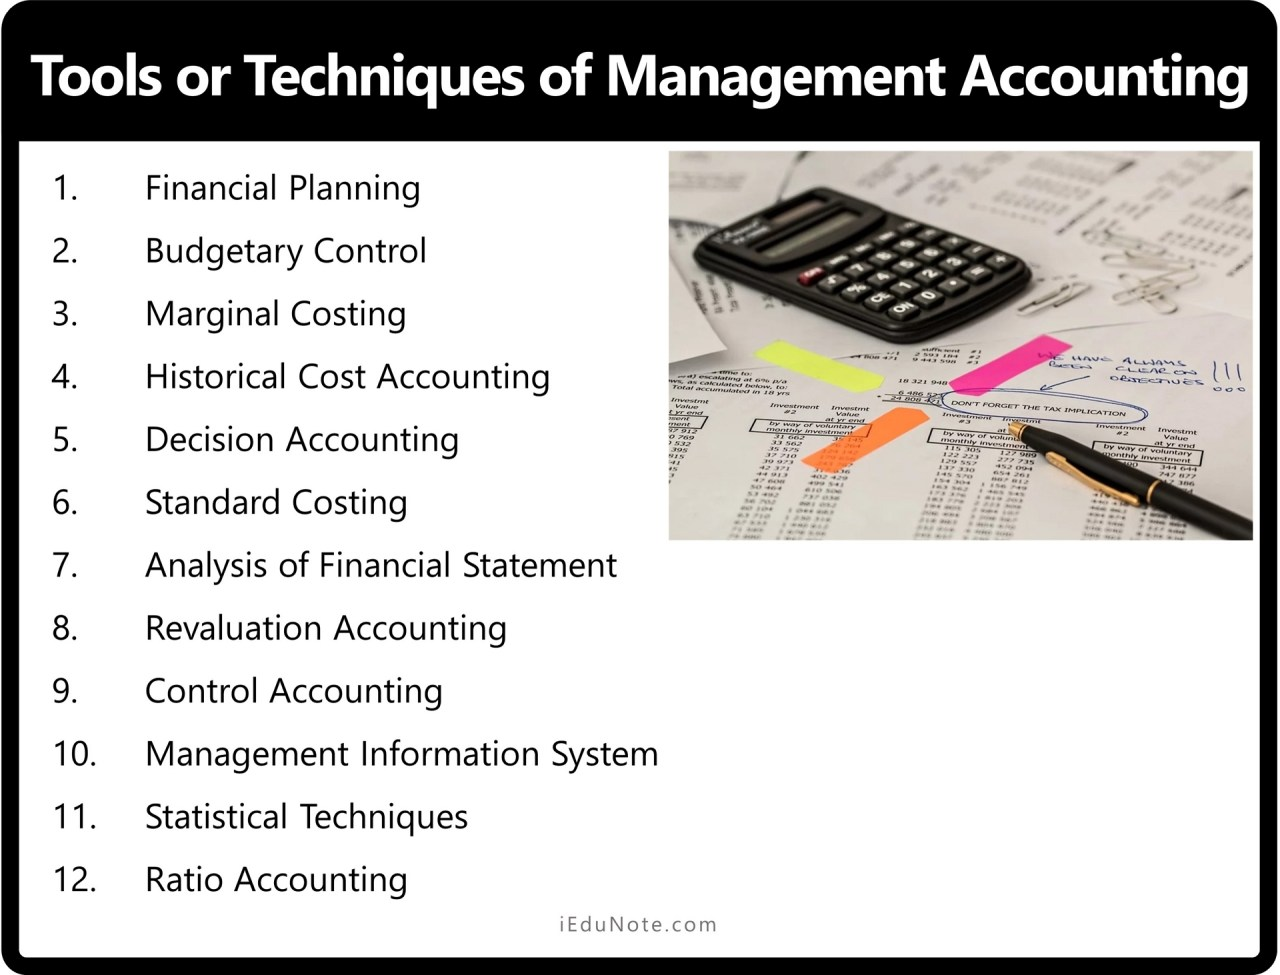 Tools Techniques of Management Accounting